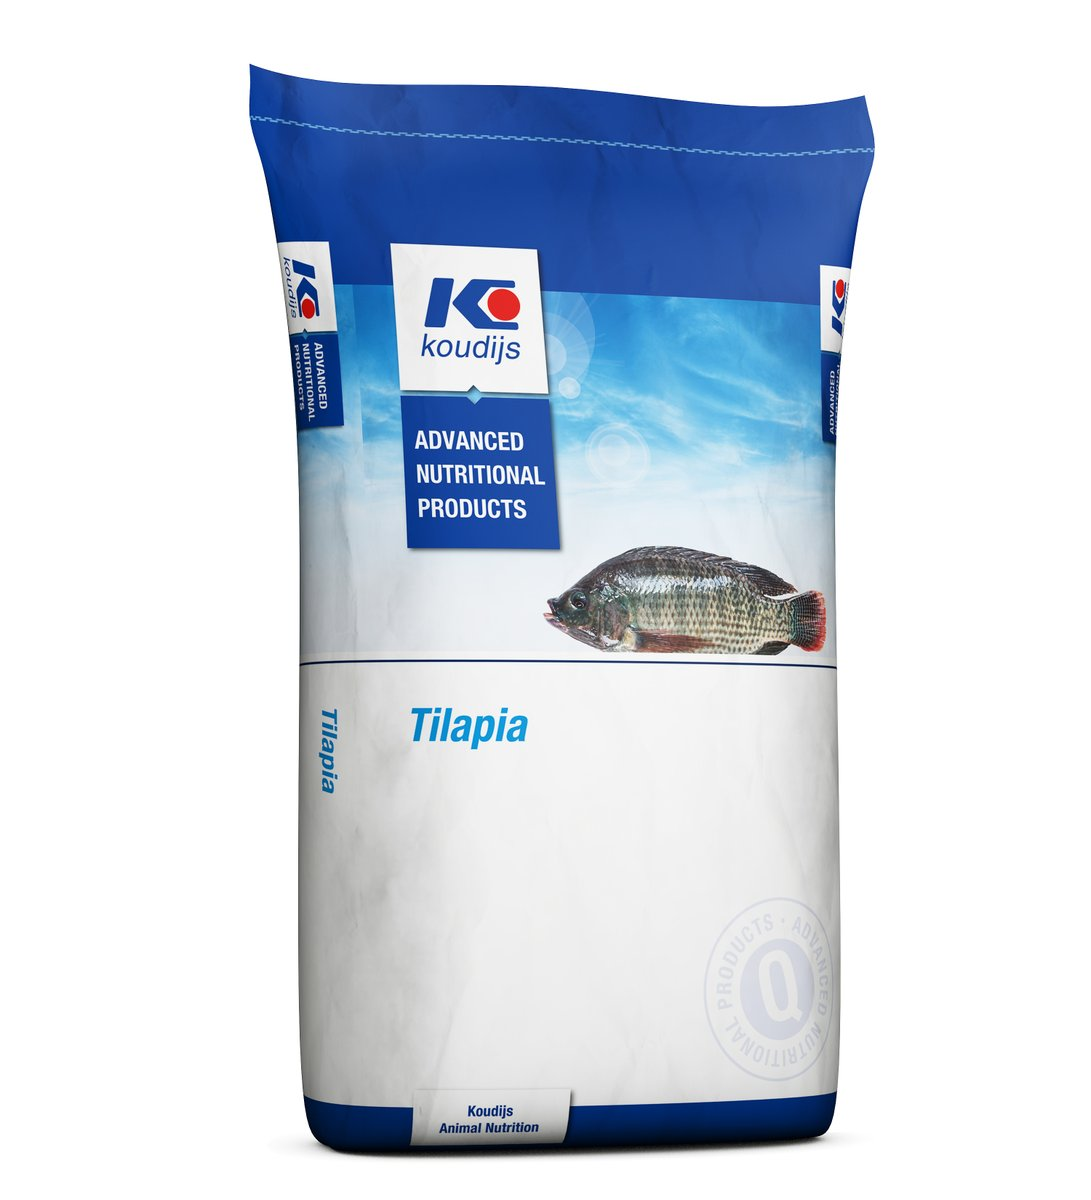 Koudijs Tilapia Fish Fry Powder Feeds 40% (10Kg)